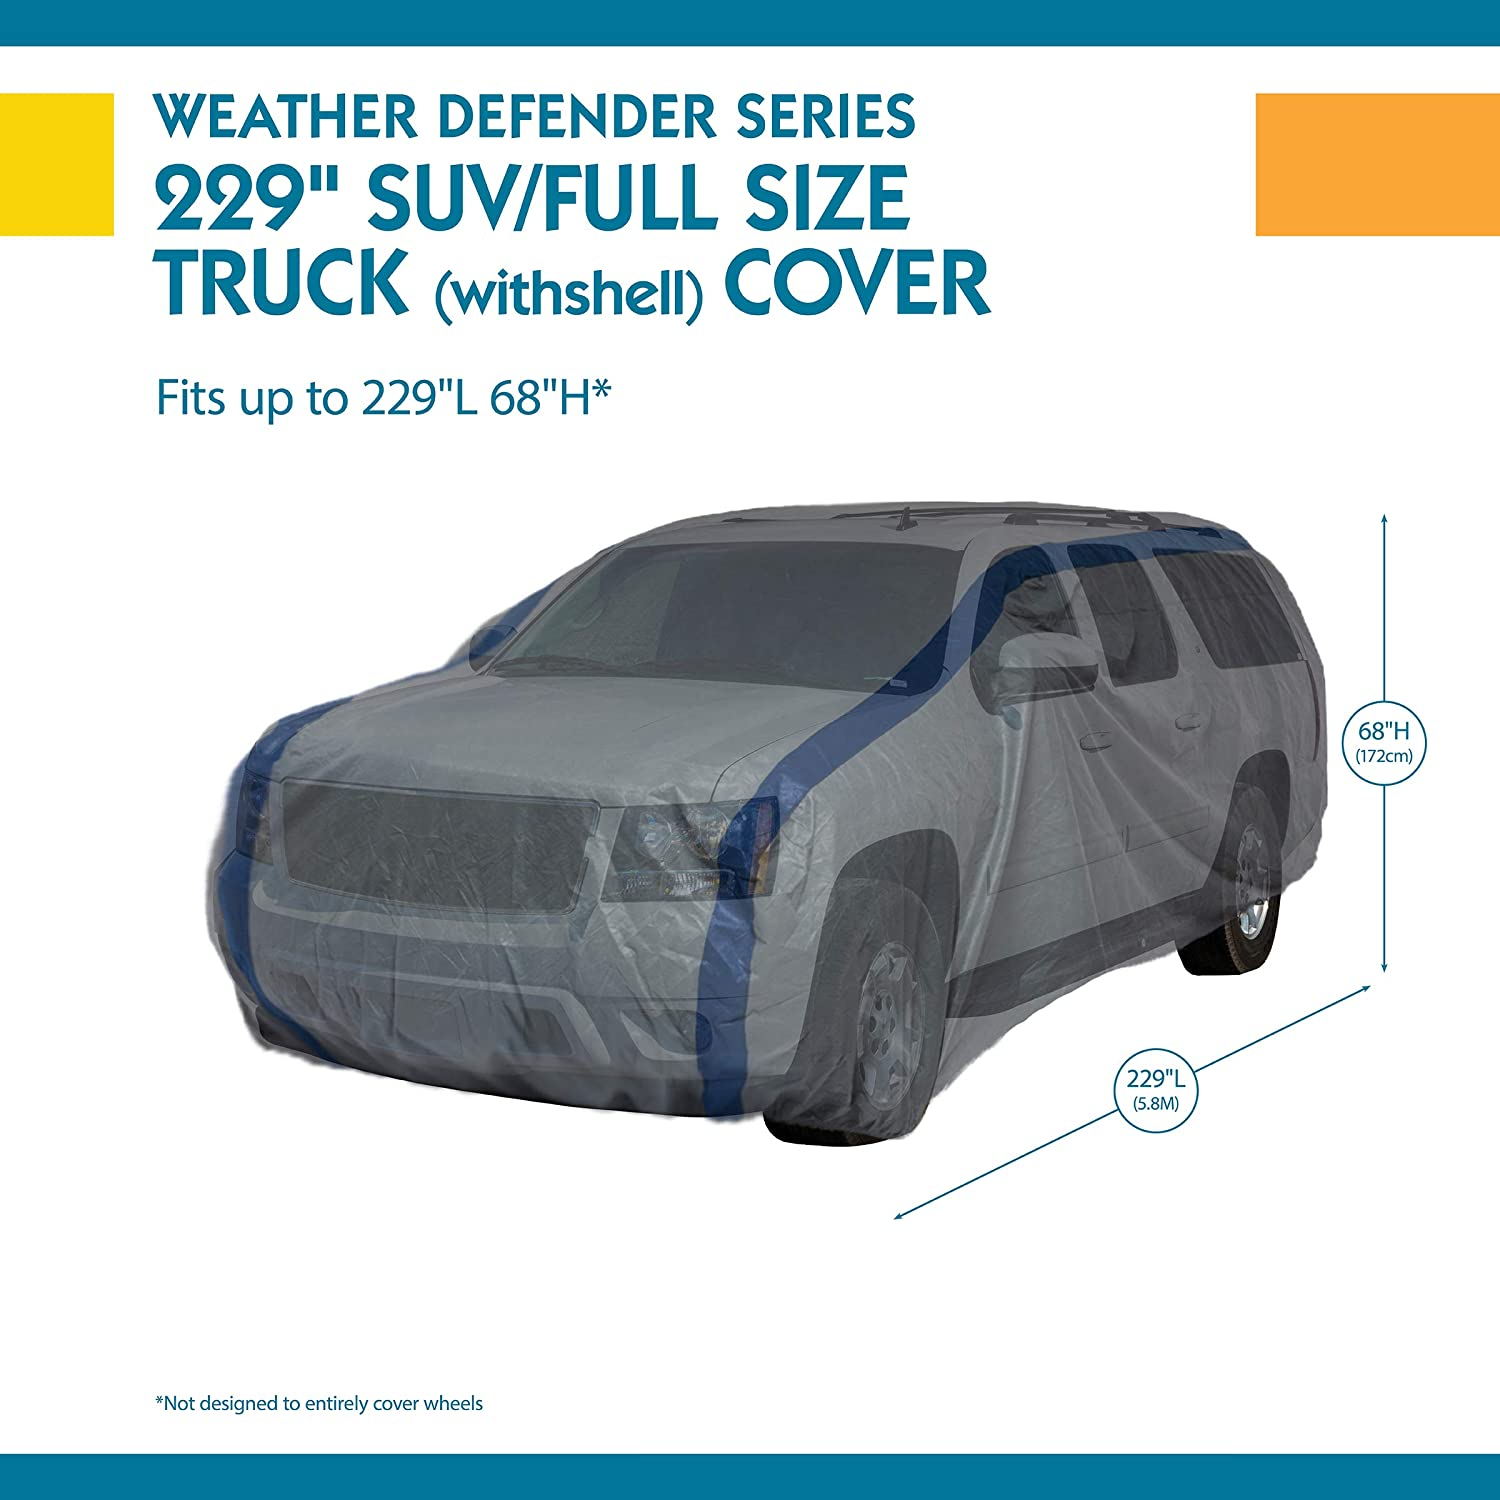 Duck Covers Weather Defender SUV Cover for SUVs//Pickup Trucks with Shell or Bed Cap up to 19 1